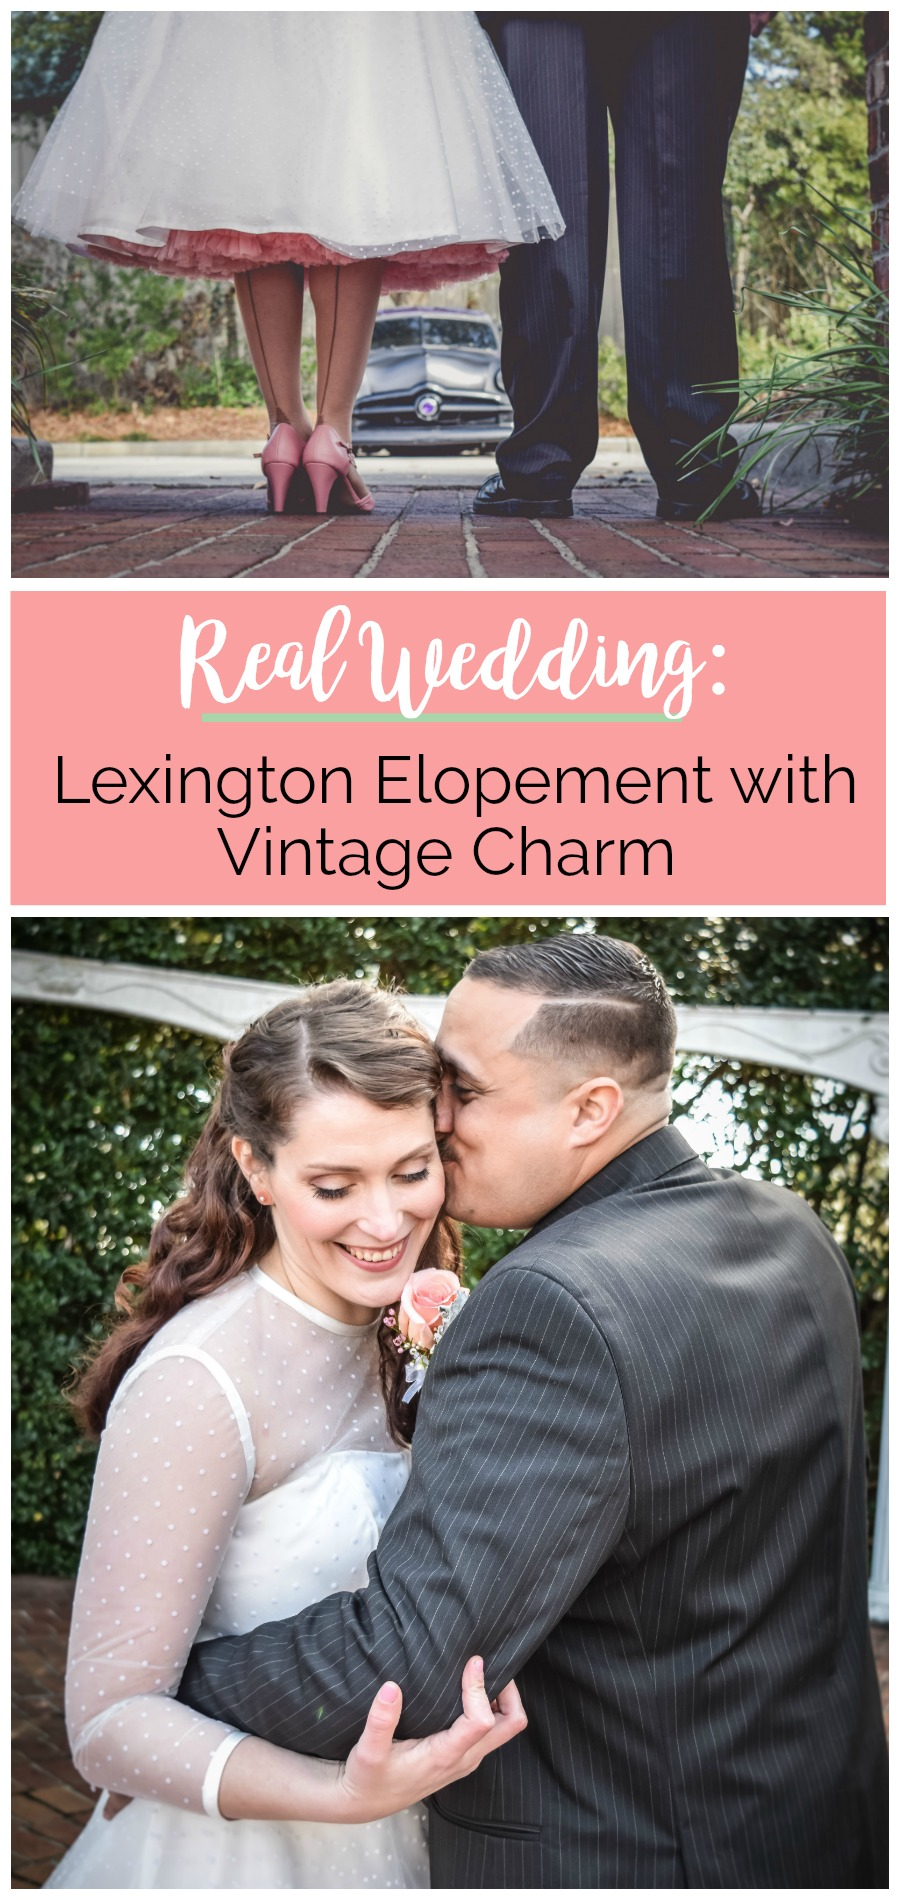 Elizabeth + Joseph: Private Wedding in Lexington with Vintage Charm | Palmetto State Weddings